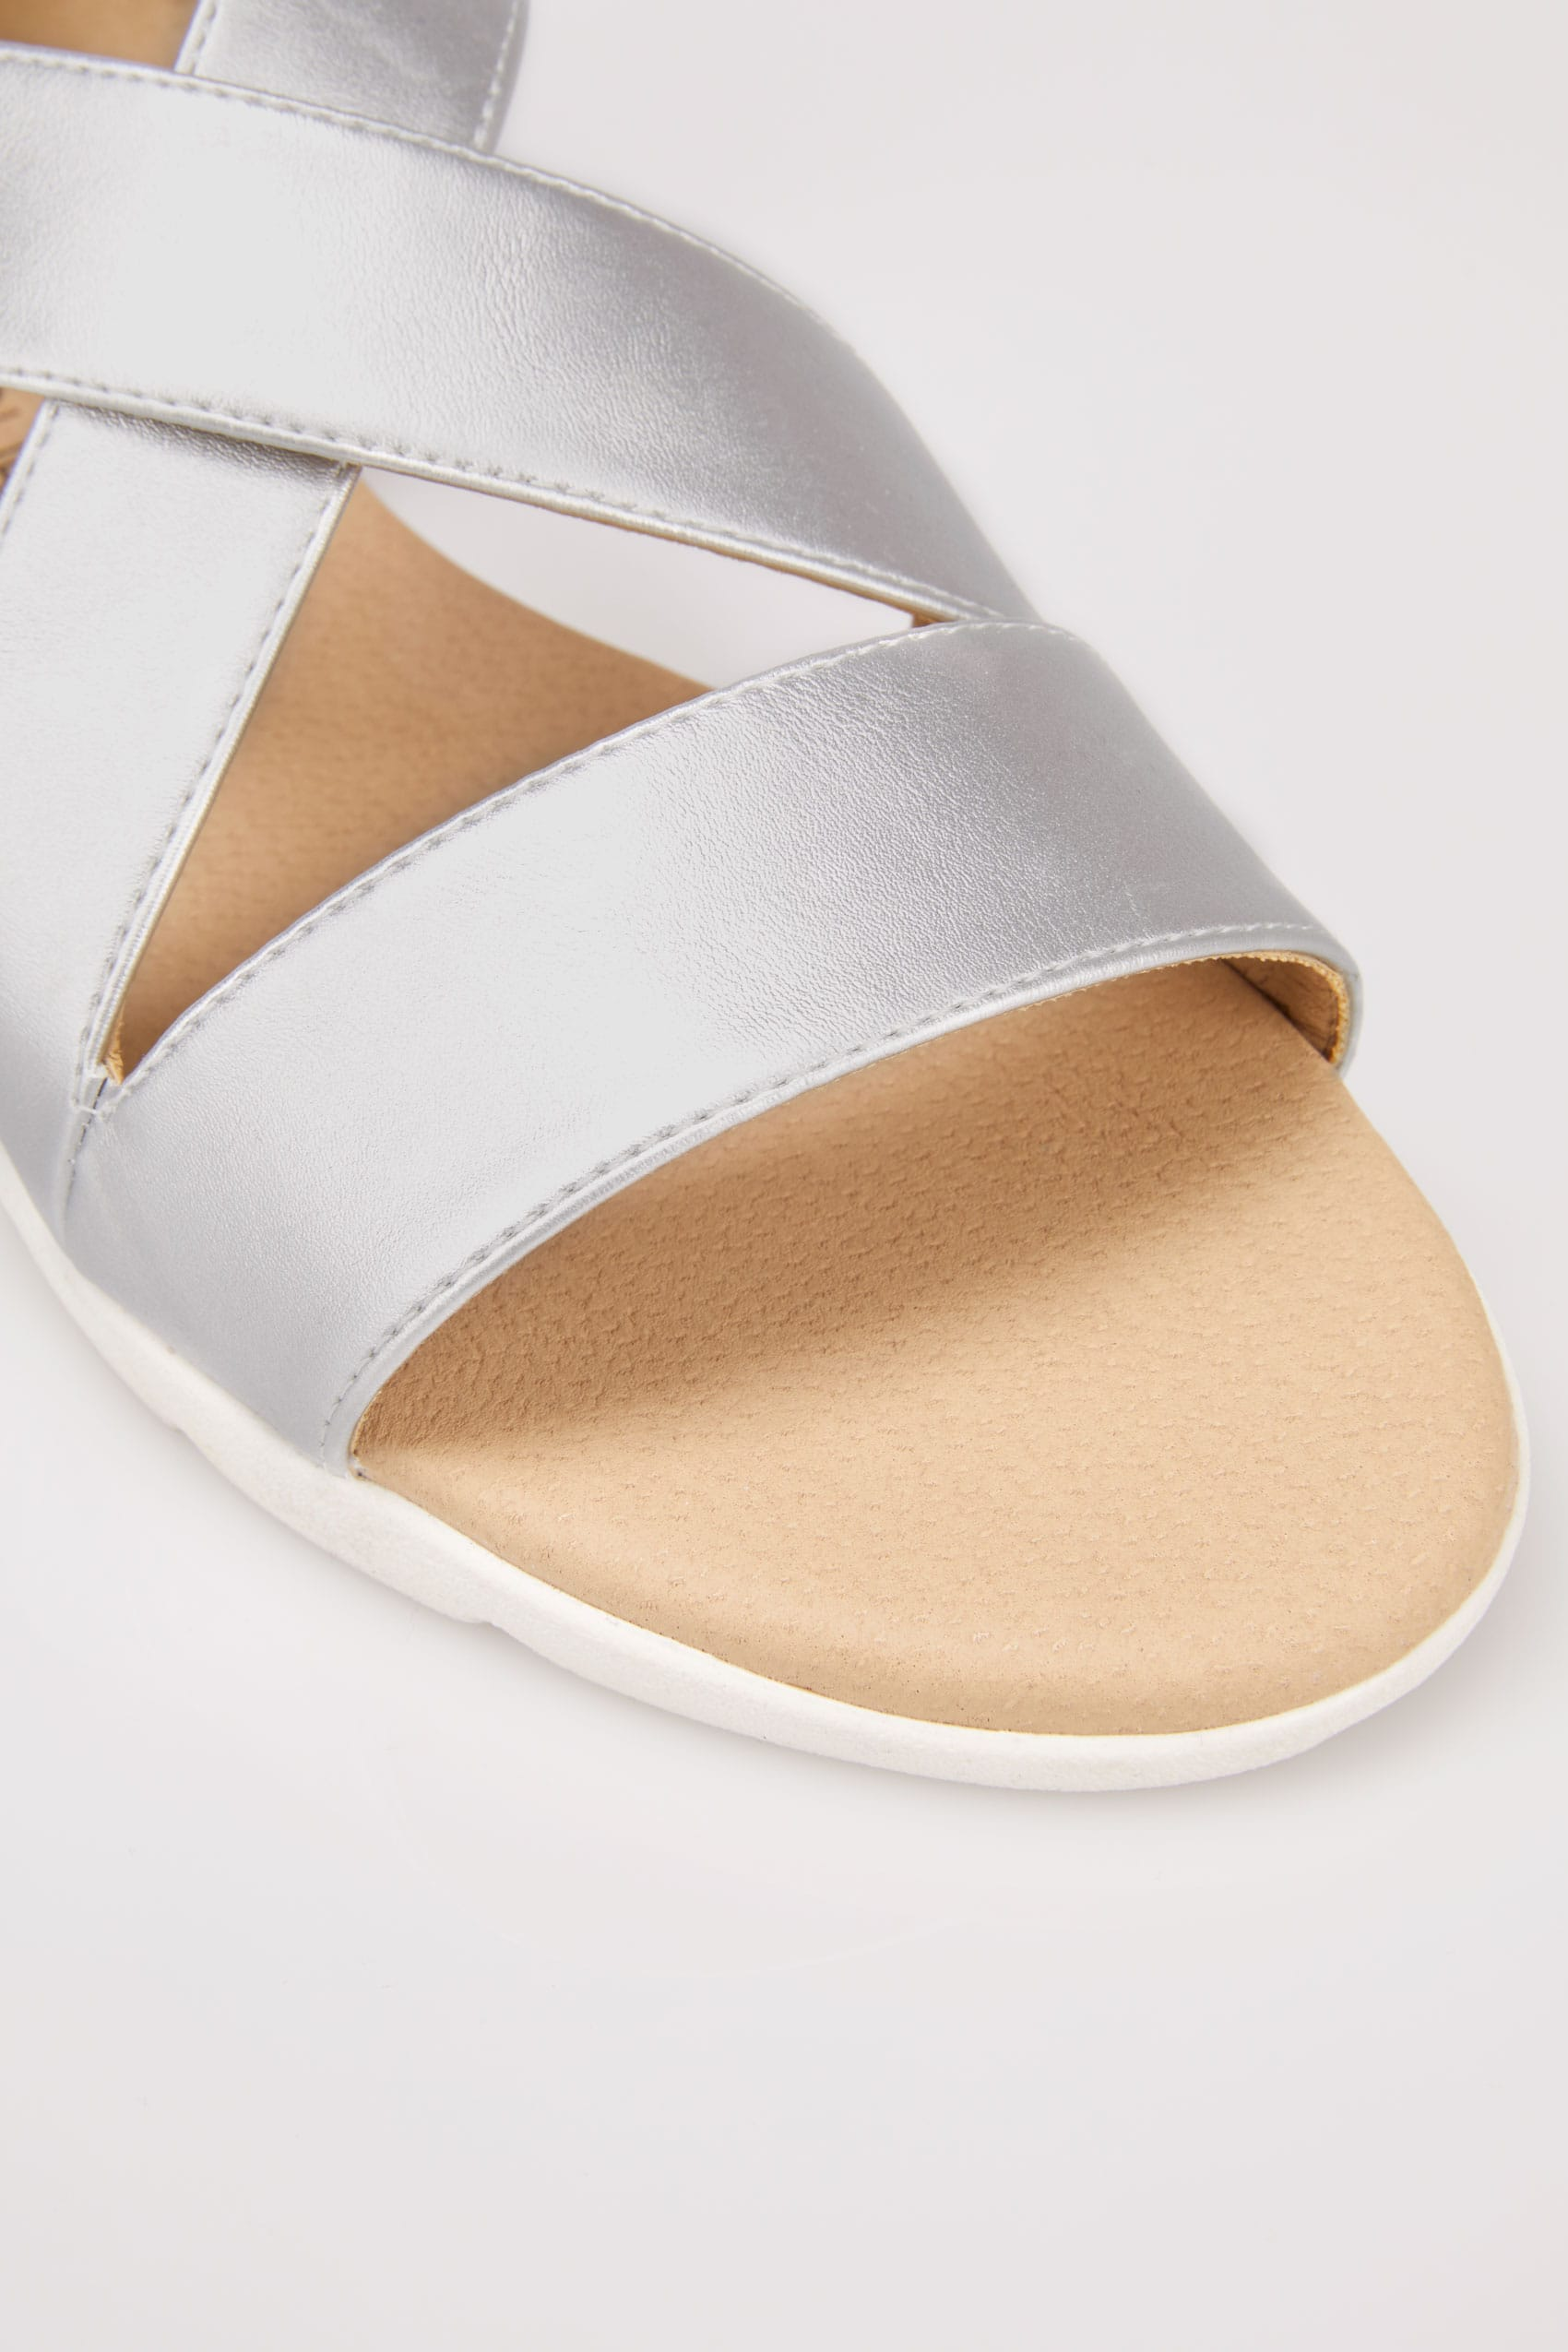 Silver Cross Over Strap Sandals In Eee Fit-7935